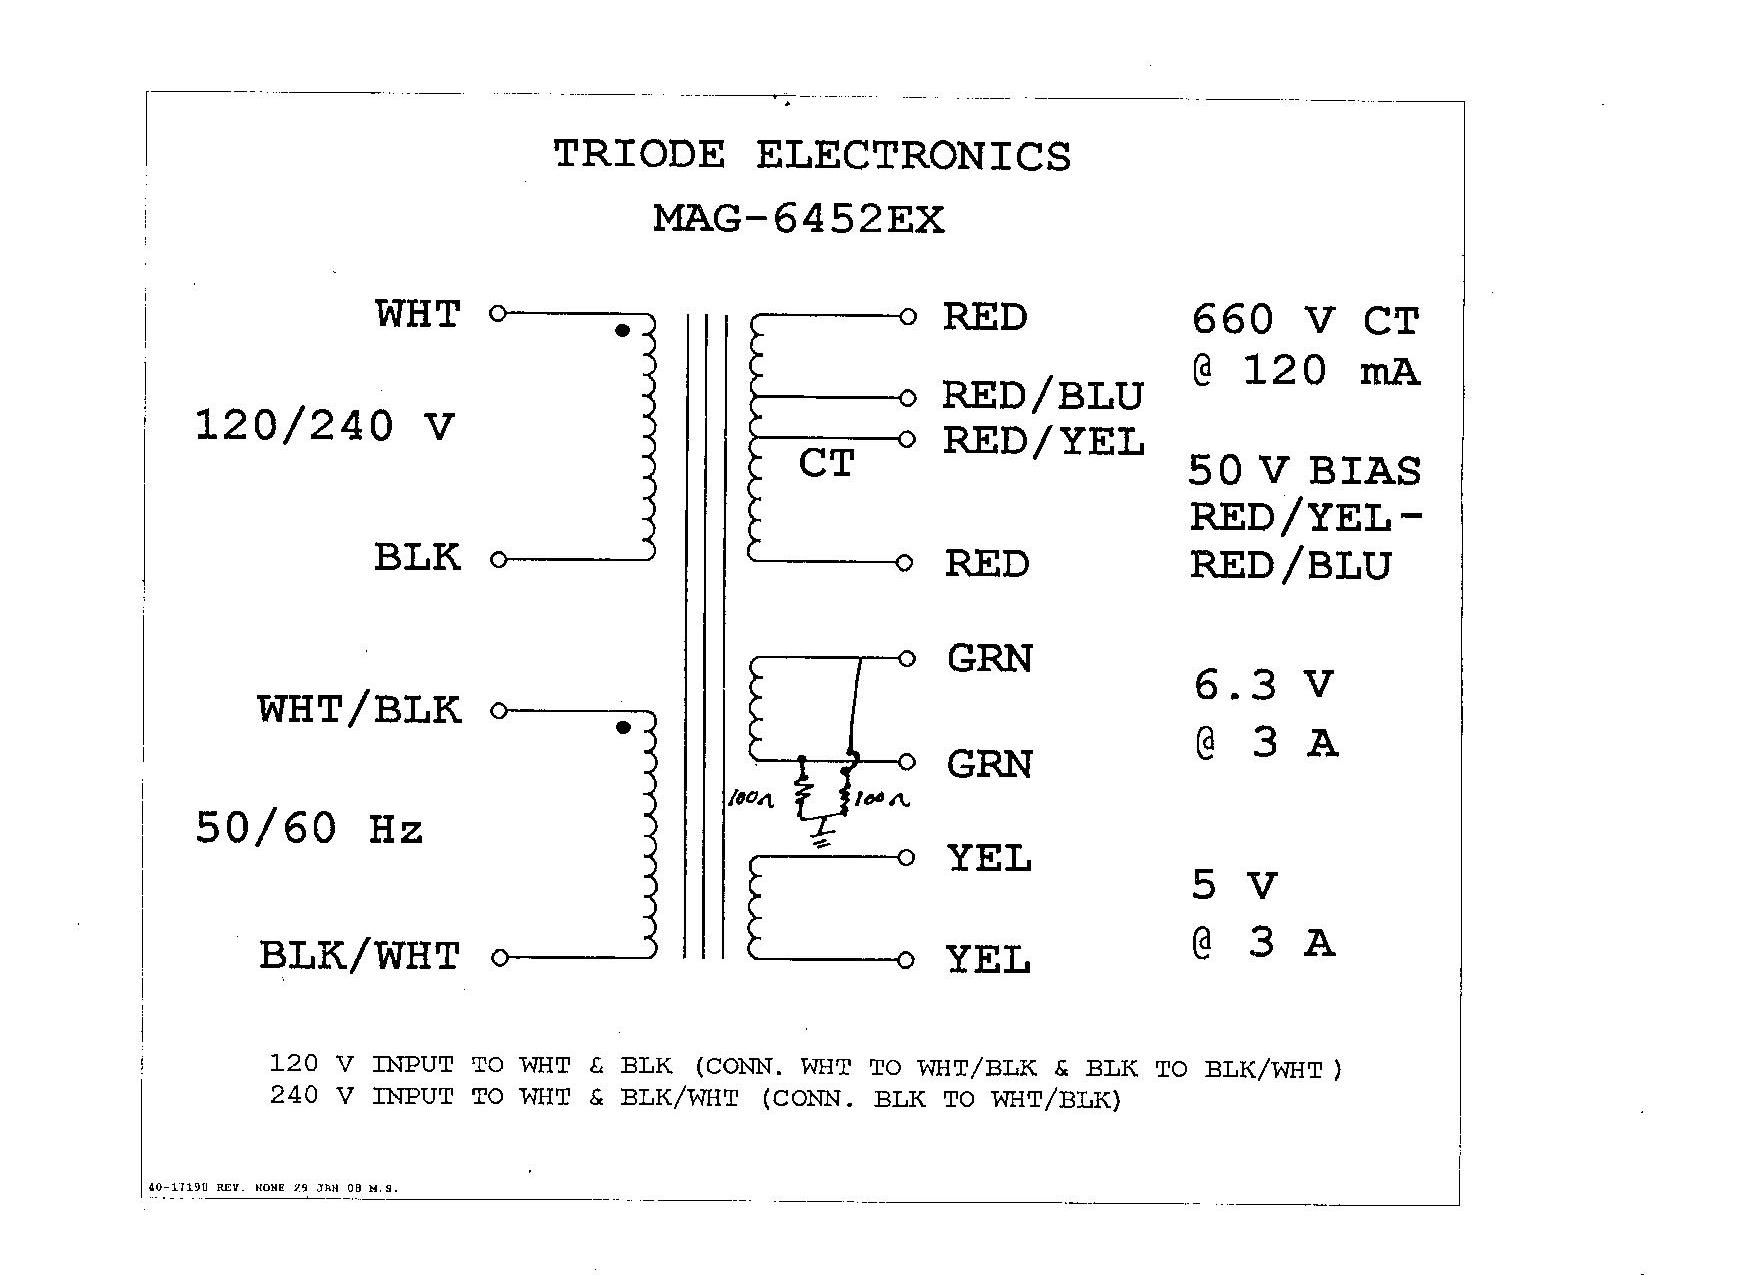 DIAGRAM] 120v 208 240v Transformer Wire Diagram FULL Version HD Quality Wire  Diagram - SUSPENSIONFACELIFT.PHOTOSCRATCH.FRsuspensionfacelift.photoscratch.fr